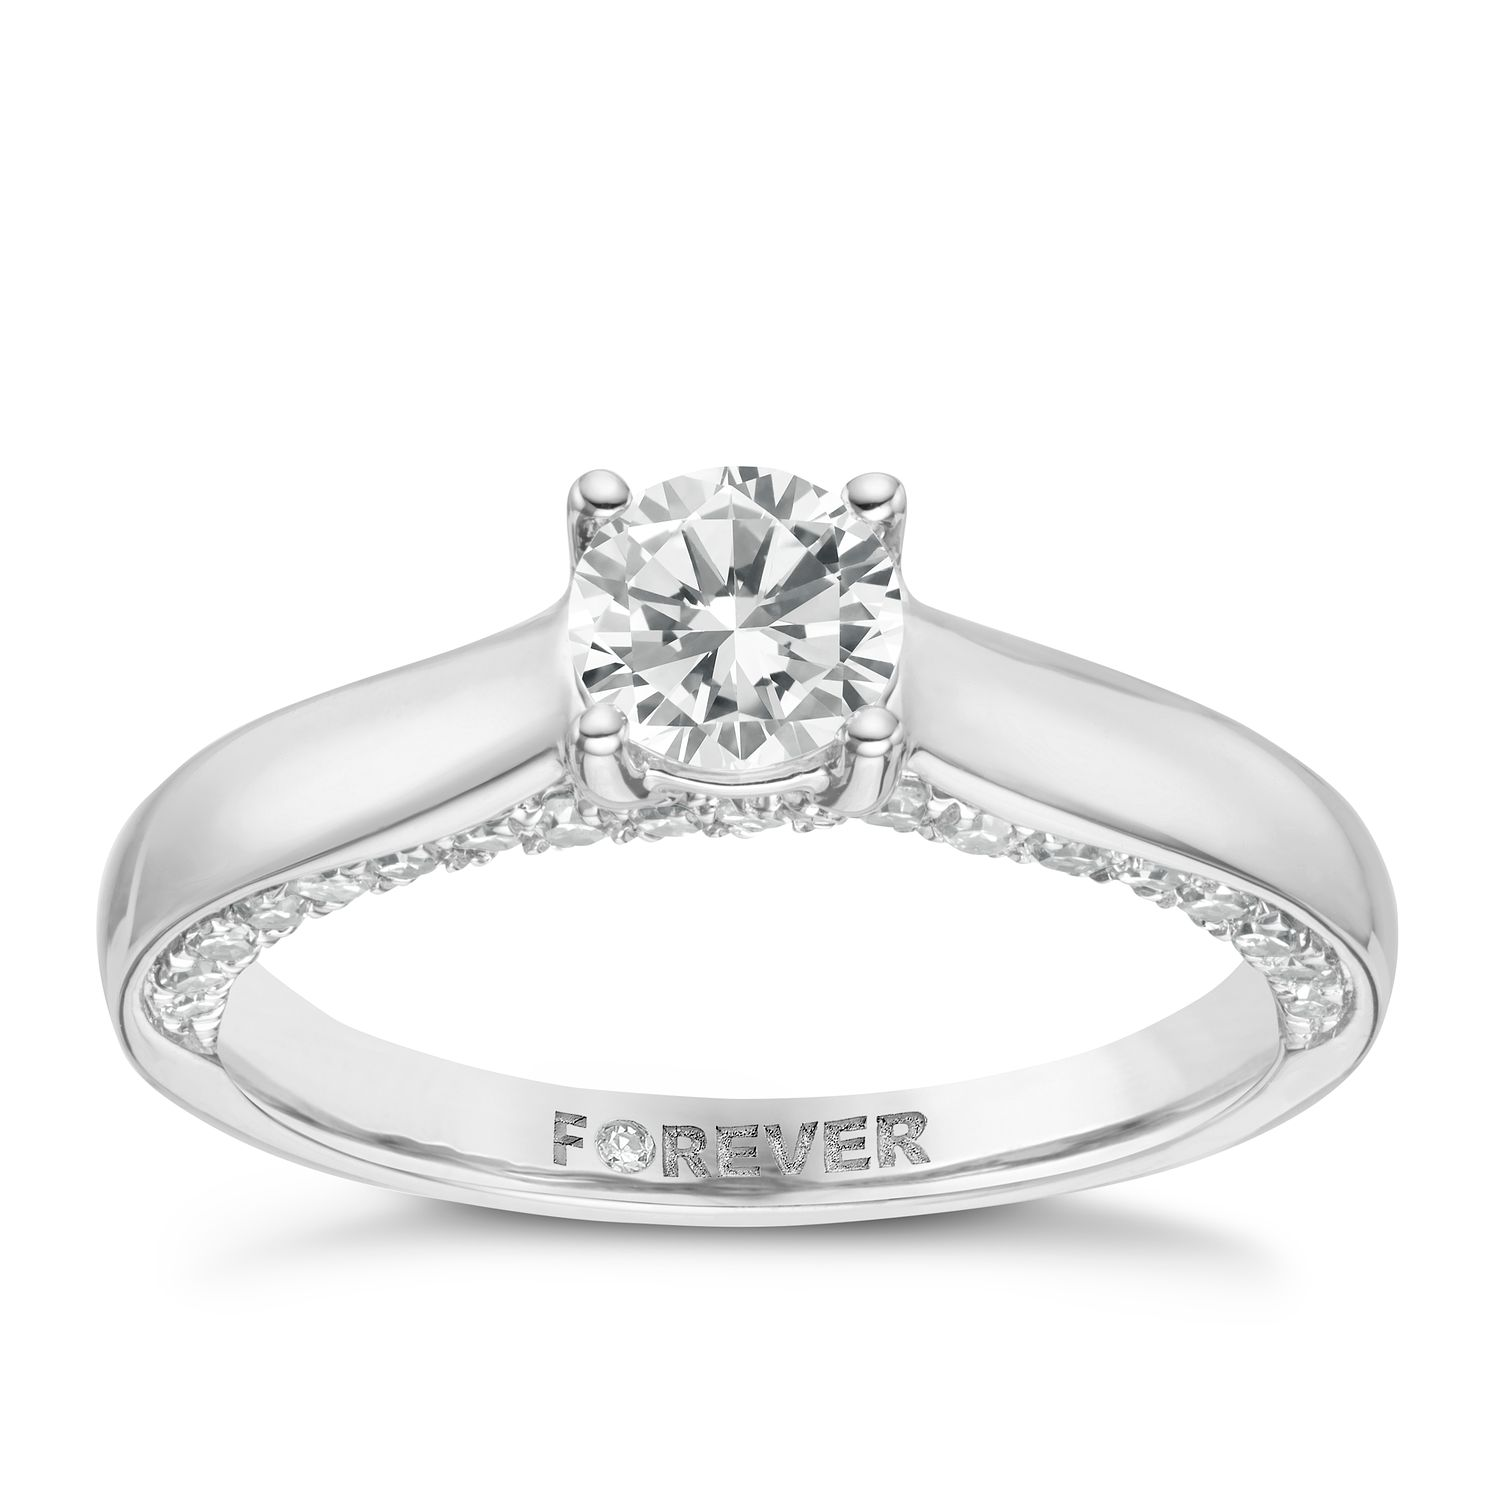 18ct White Gold Forever Diamond Solitaire Ring - Product number 8103291